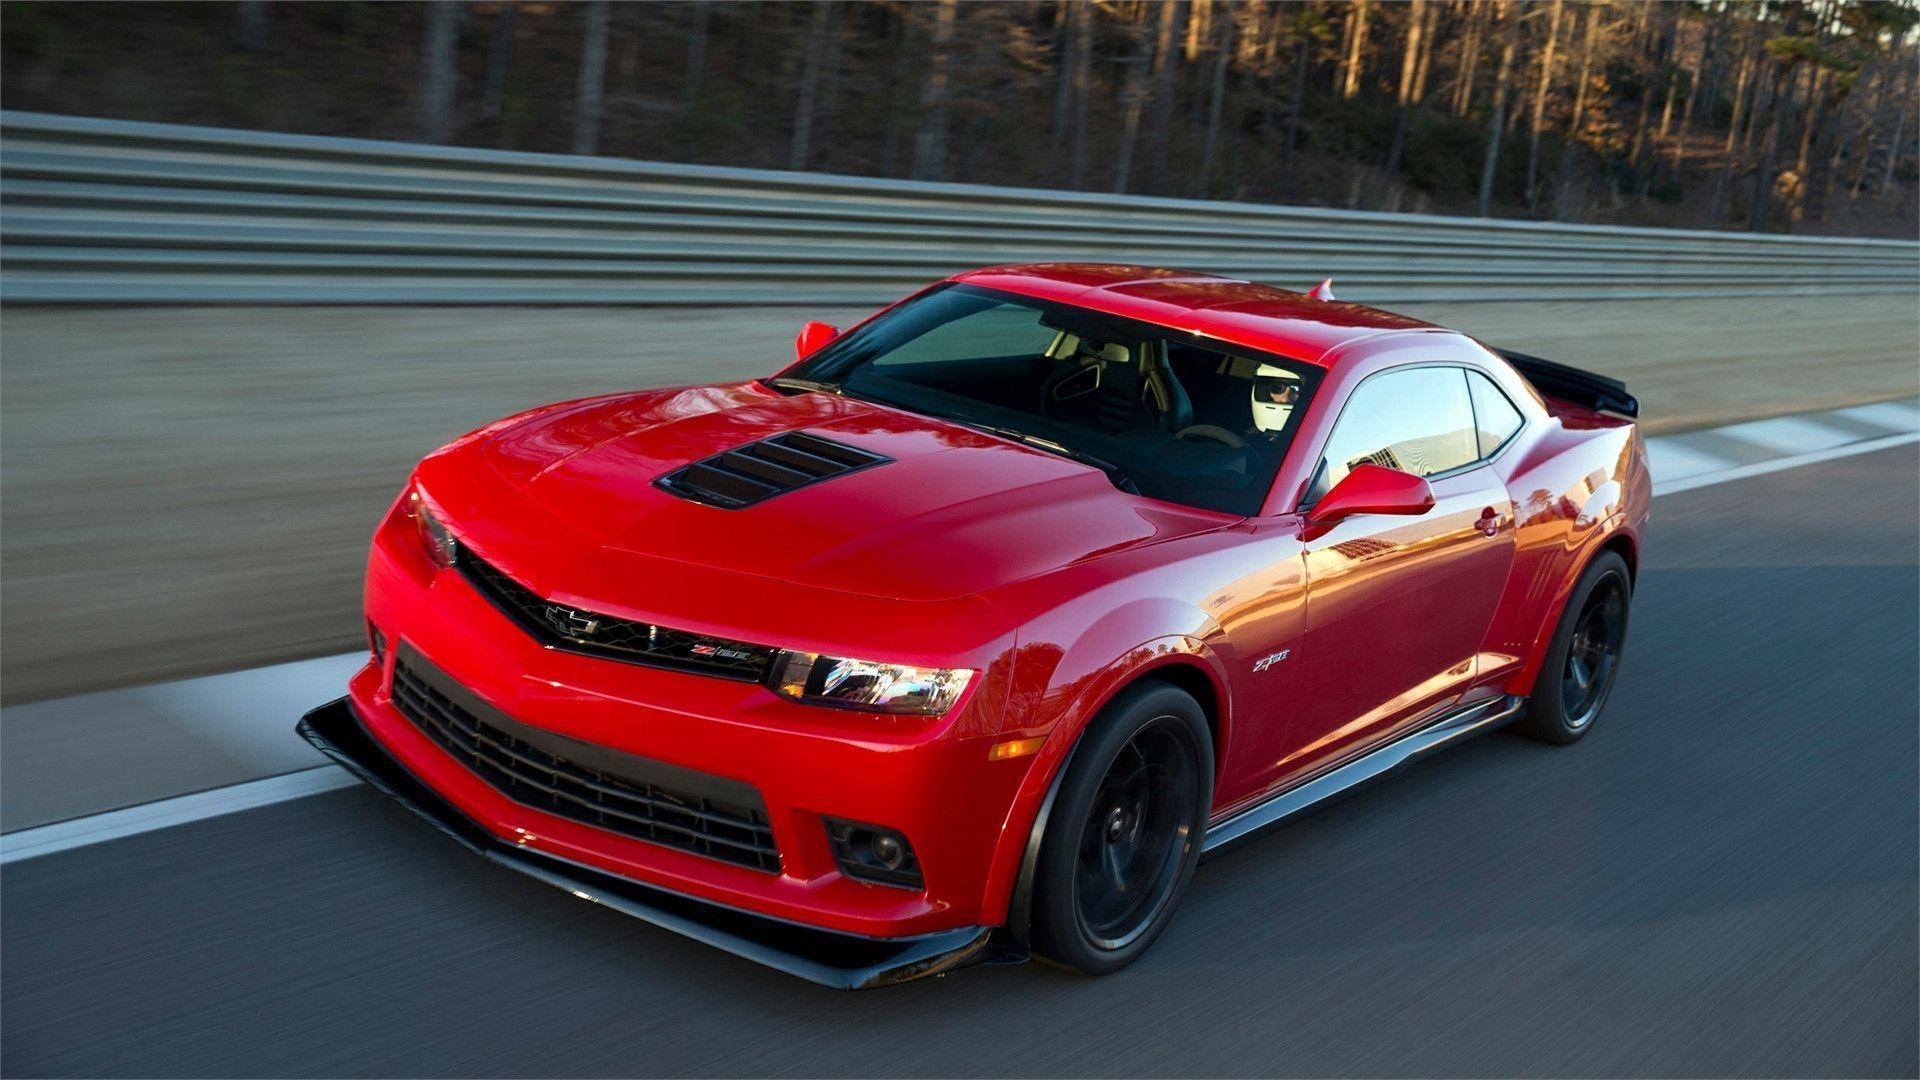 2015 Camaro Zl1 Wallpapers 1920x1080